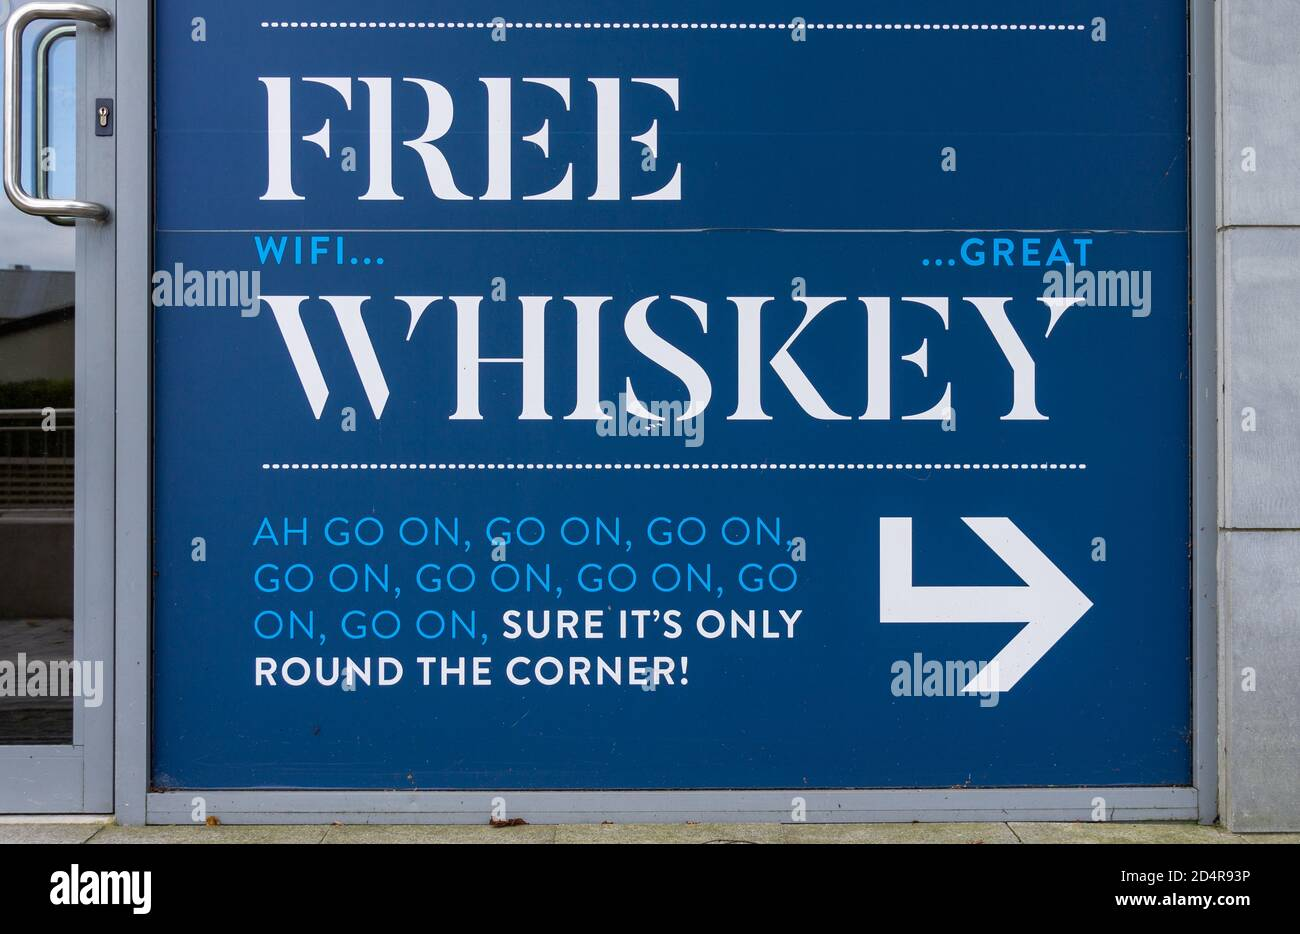 white-on-blue-sign-with-free-whiskey-spelled-out-2D4R93P.jpg